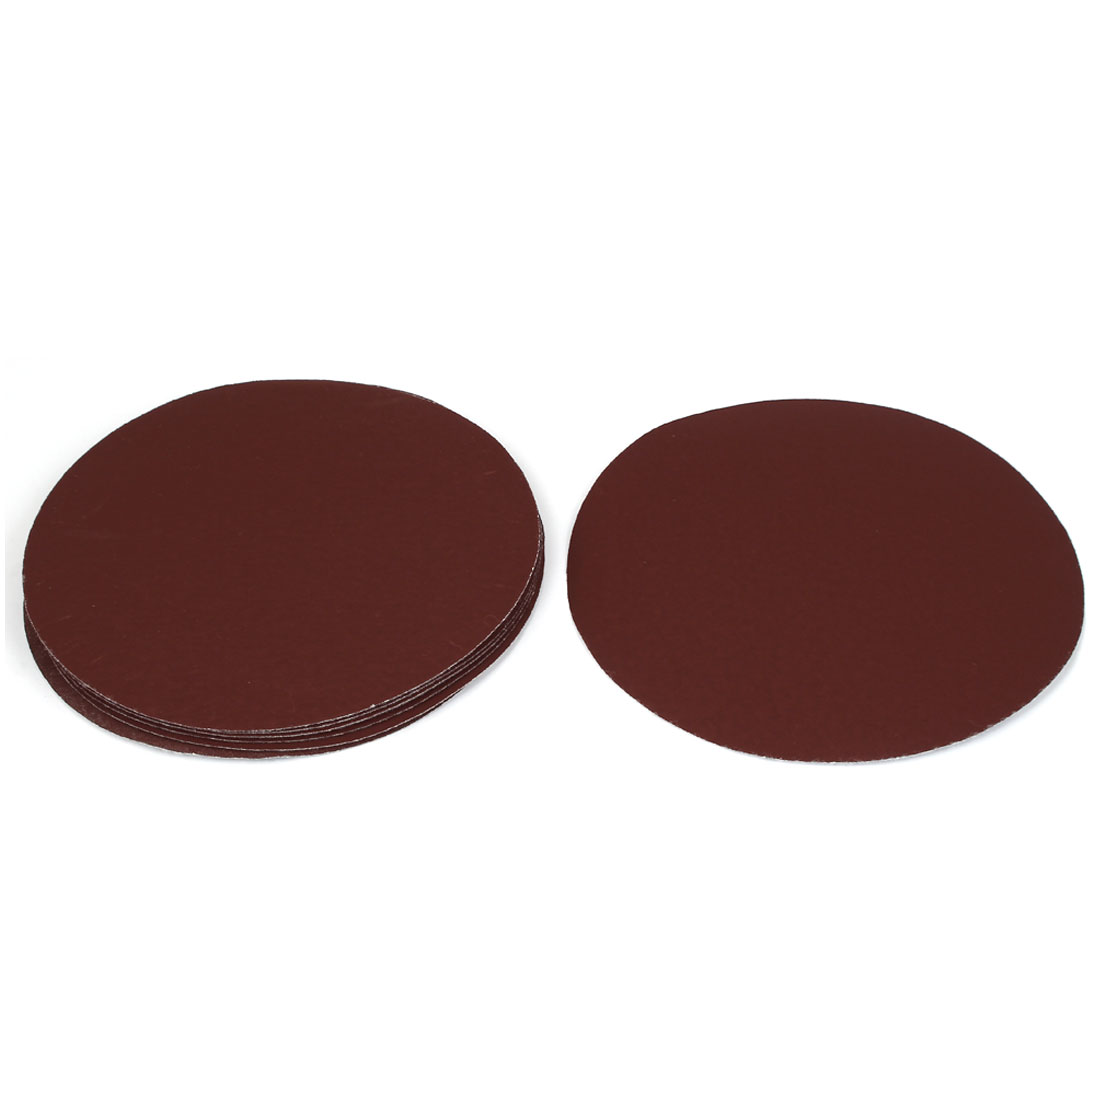 "7"" Dia Polishing Round Abrasive Sanding Sandpaper Sheet Disc 2000 Grit 10 Pcs"